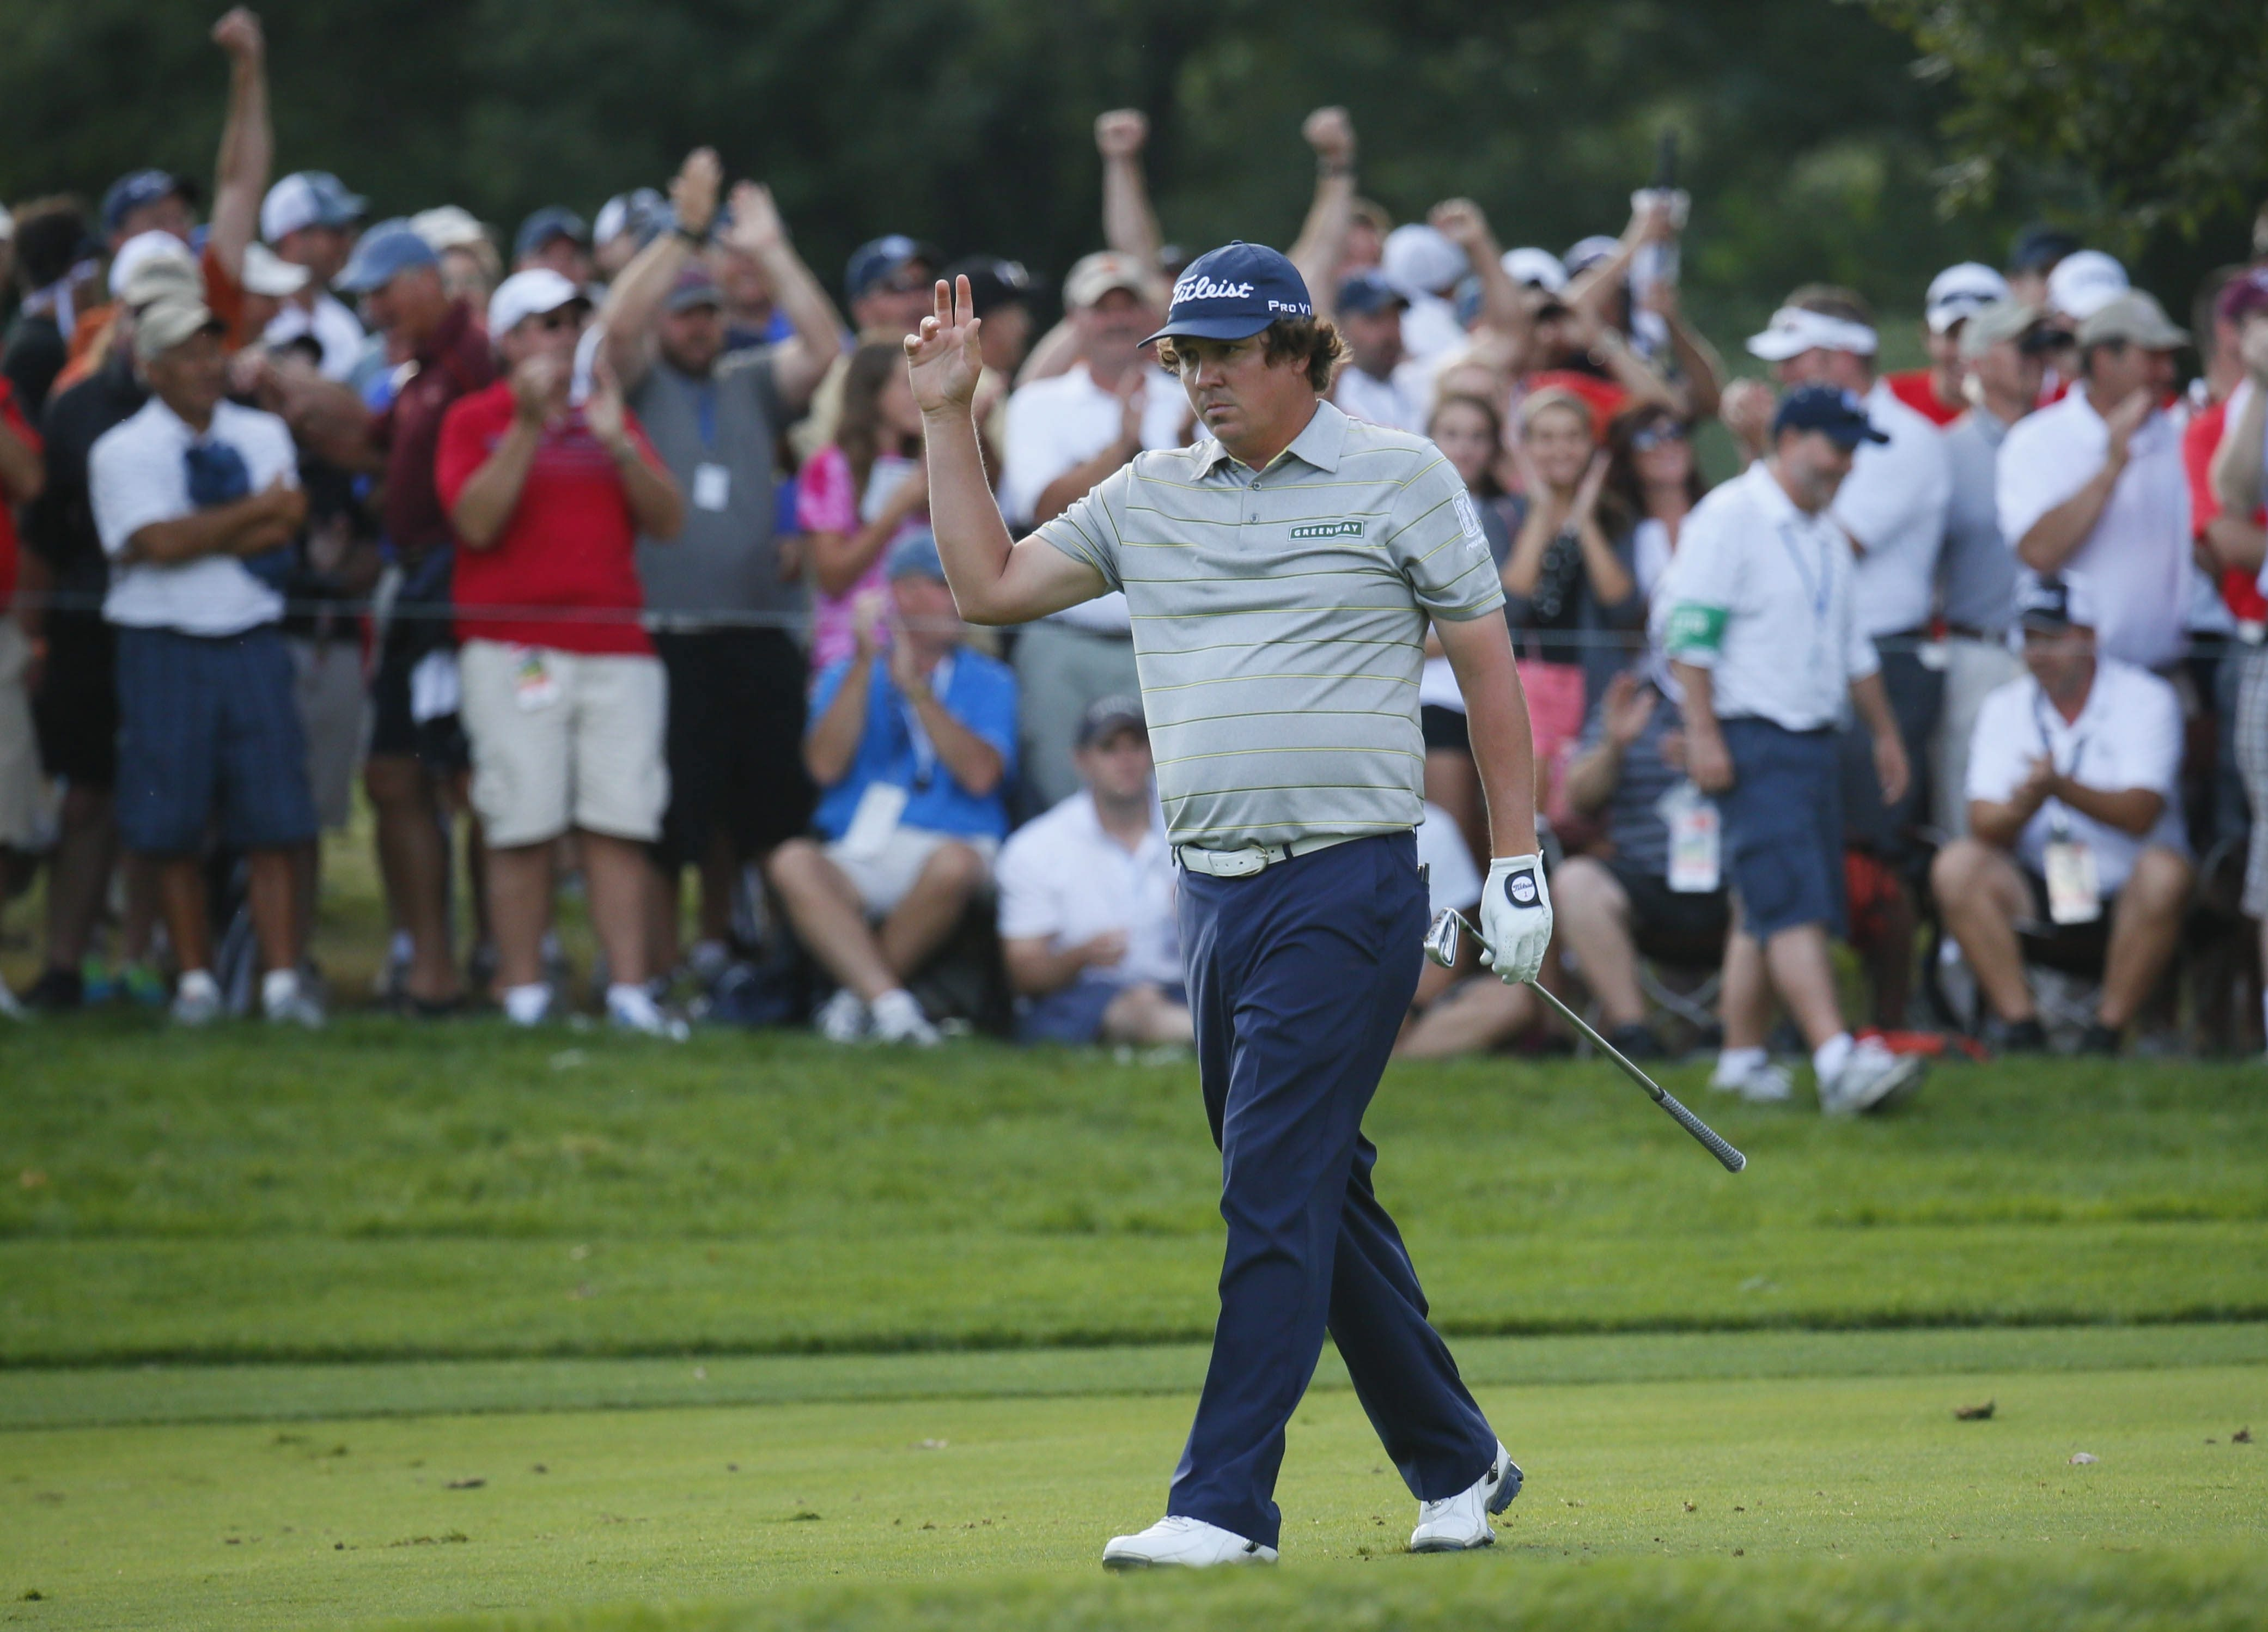 Jason Dufner waves to the cheering crowd during the walk onto the 18th green, en route to his course-record 63 during the second round Friday.